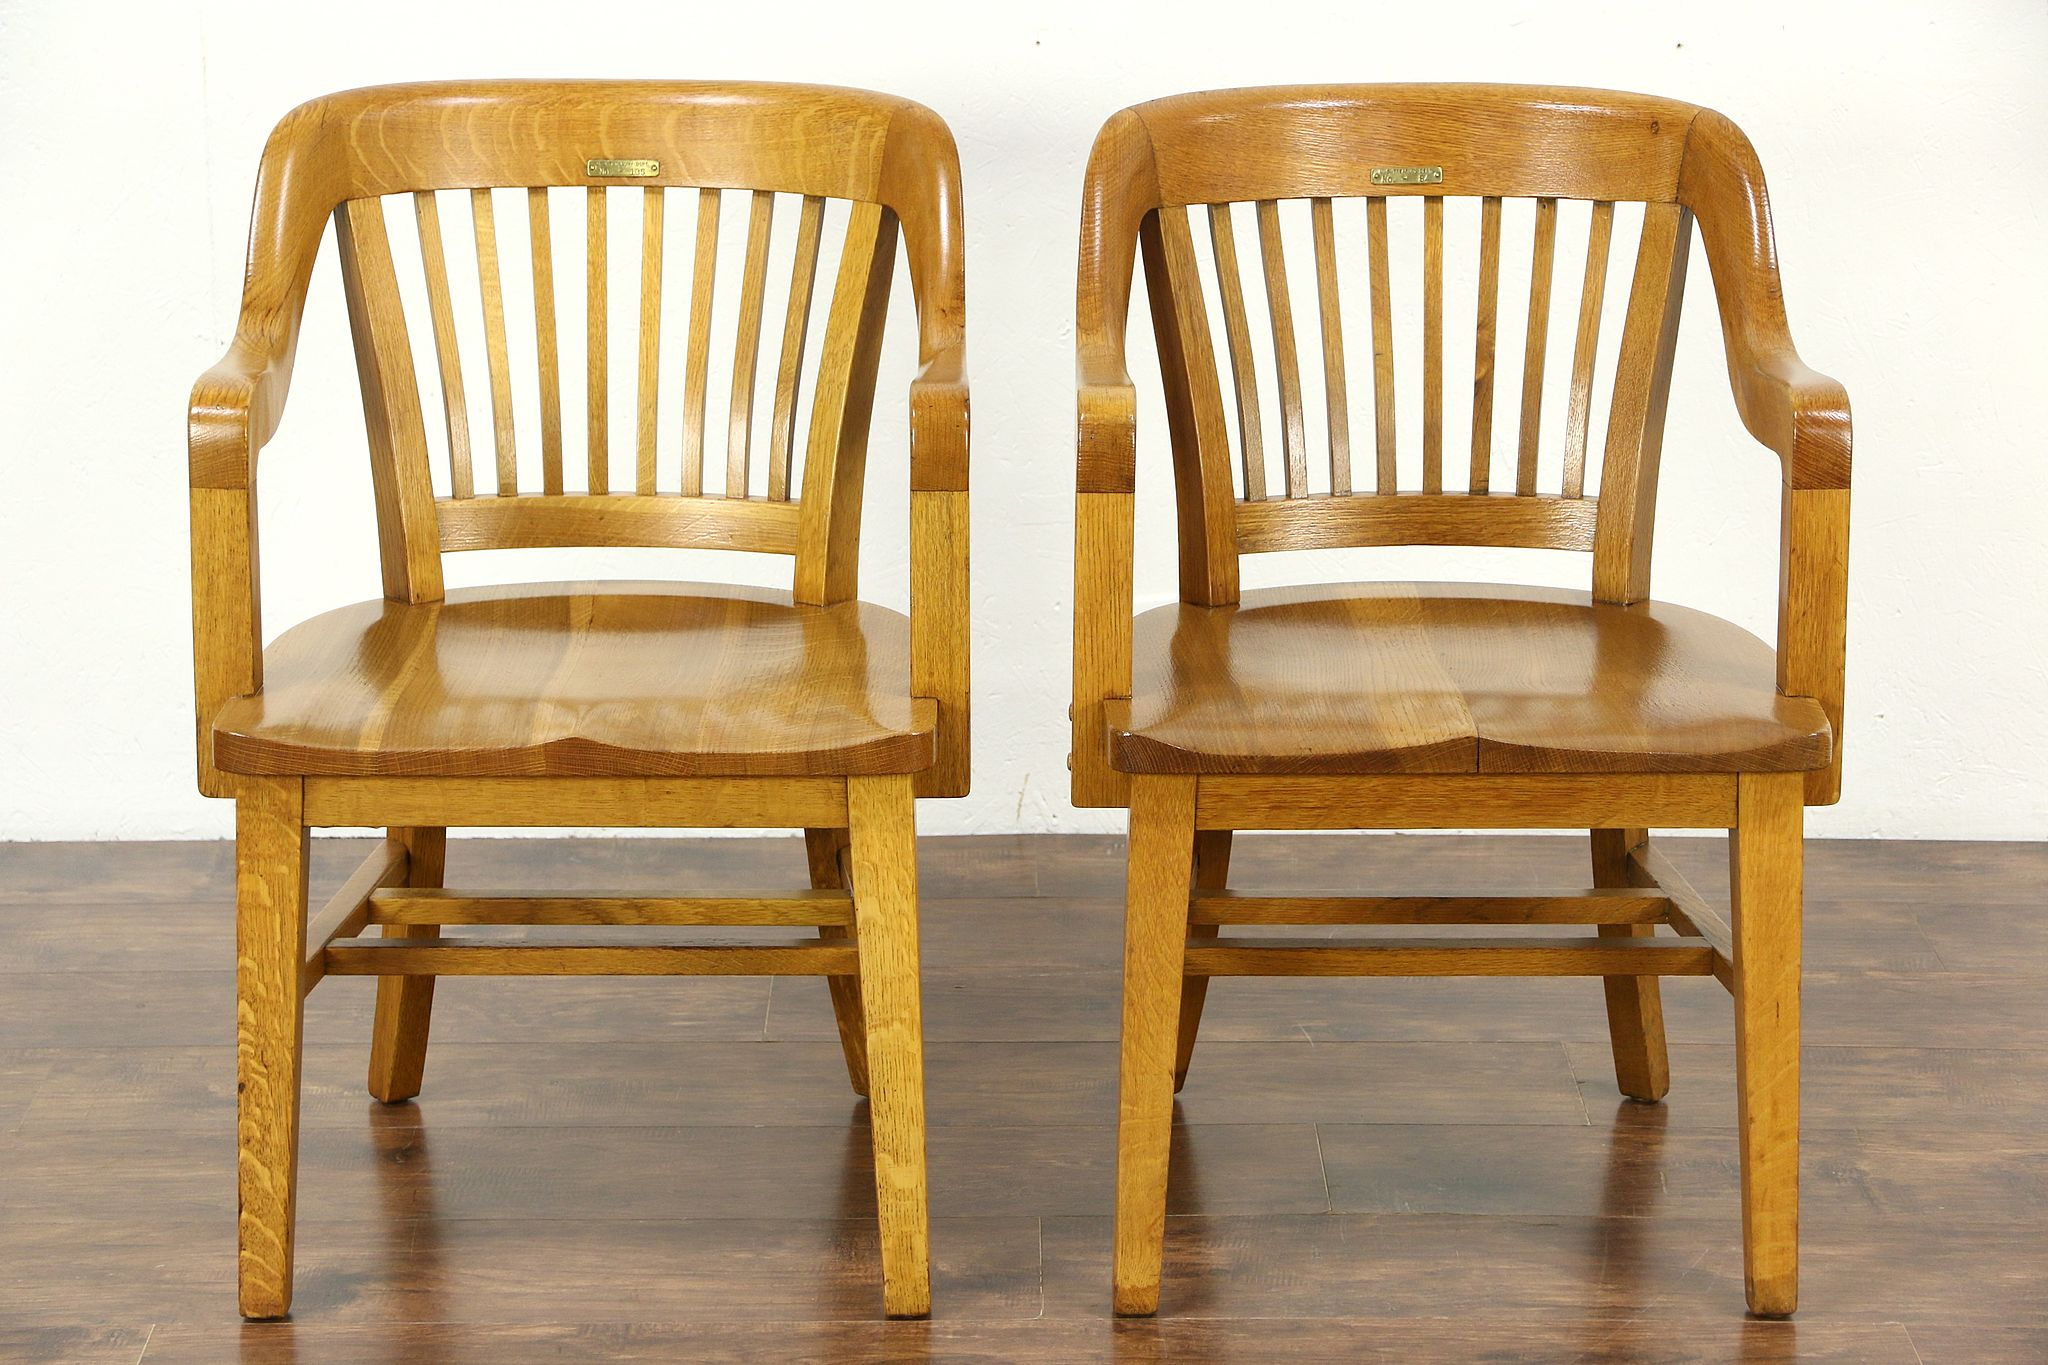 wooden library chair anywhere insert sold pair quarter sawn oak 1915 antique desk office or